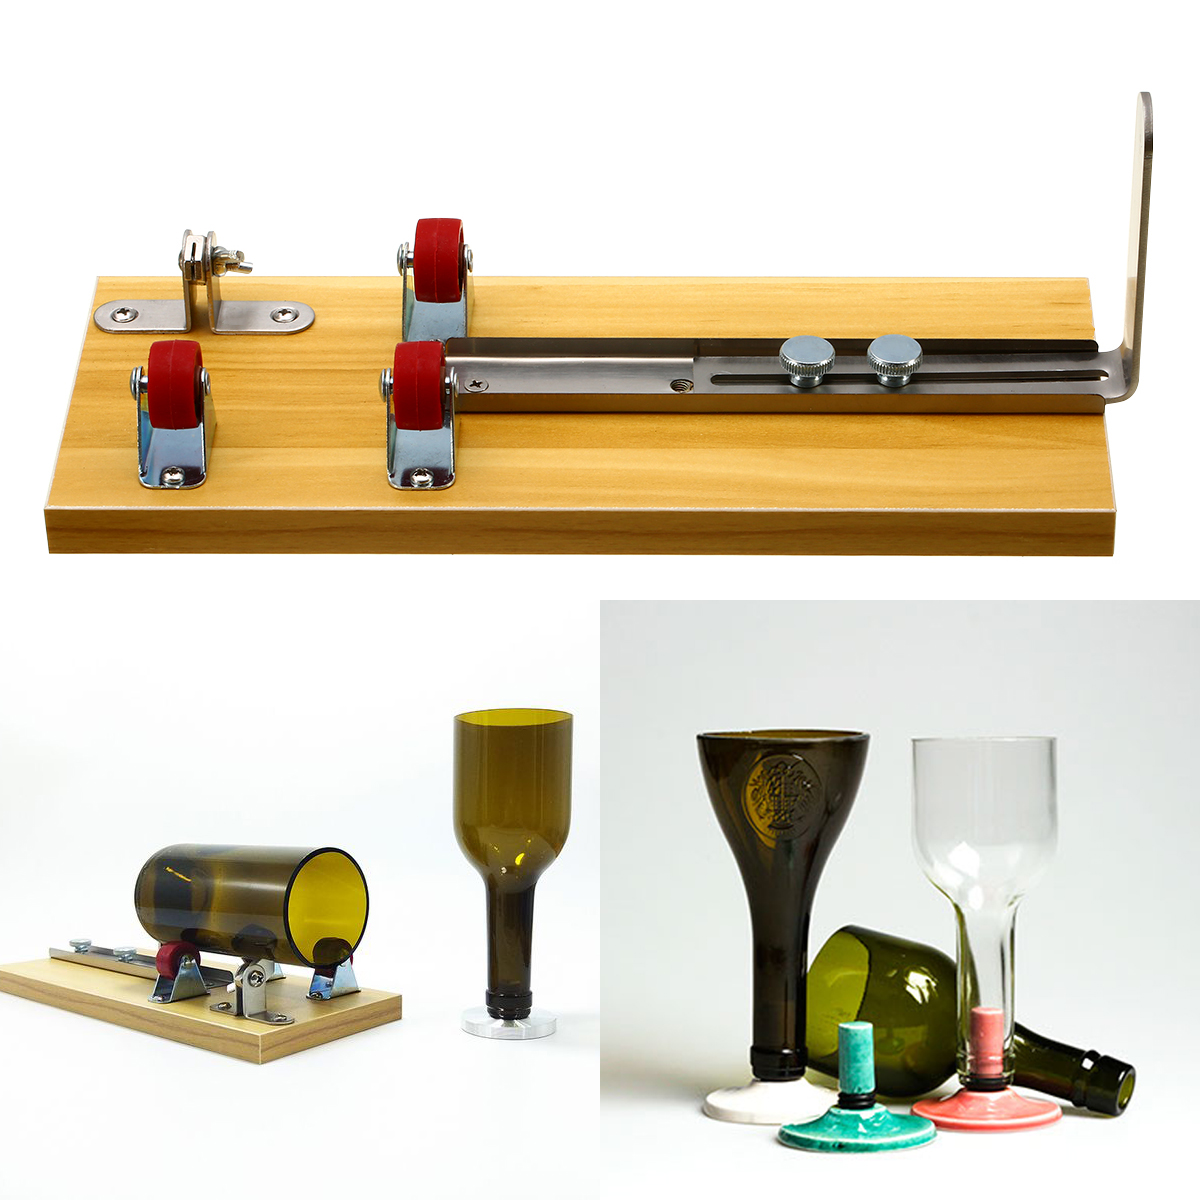 Mayitr Glass Bottle Cutter Machine Wine Bottle Jar Cutting Tools Recycle DIY Sculpture Art Tools High Quality eyki h5018 high quality leak proof bottle w filter strap gray 400ml